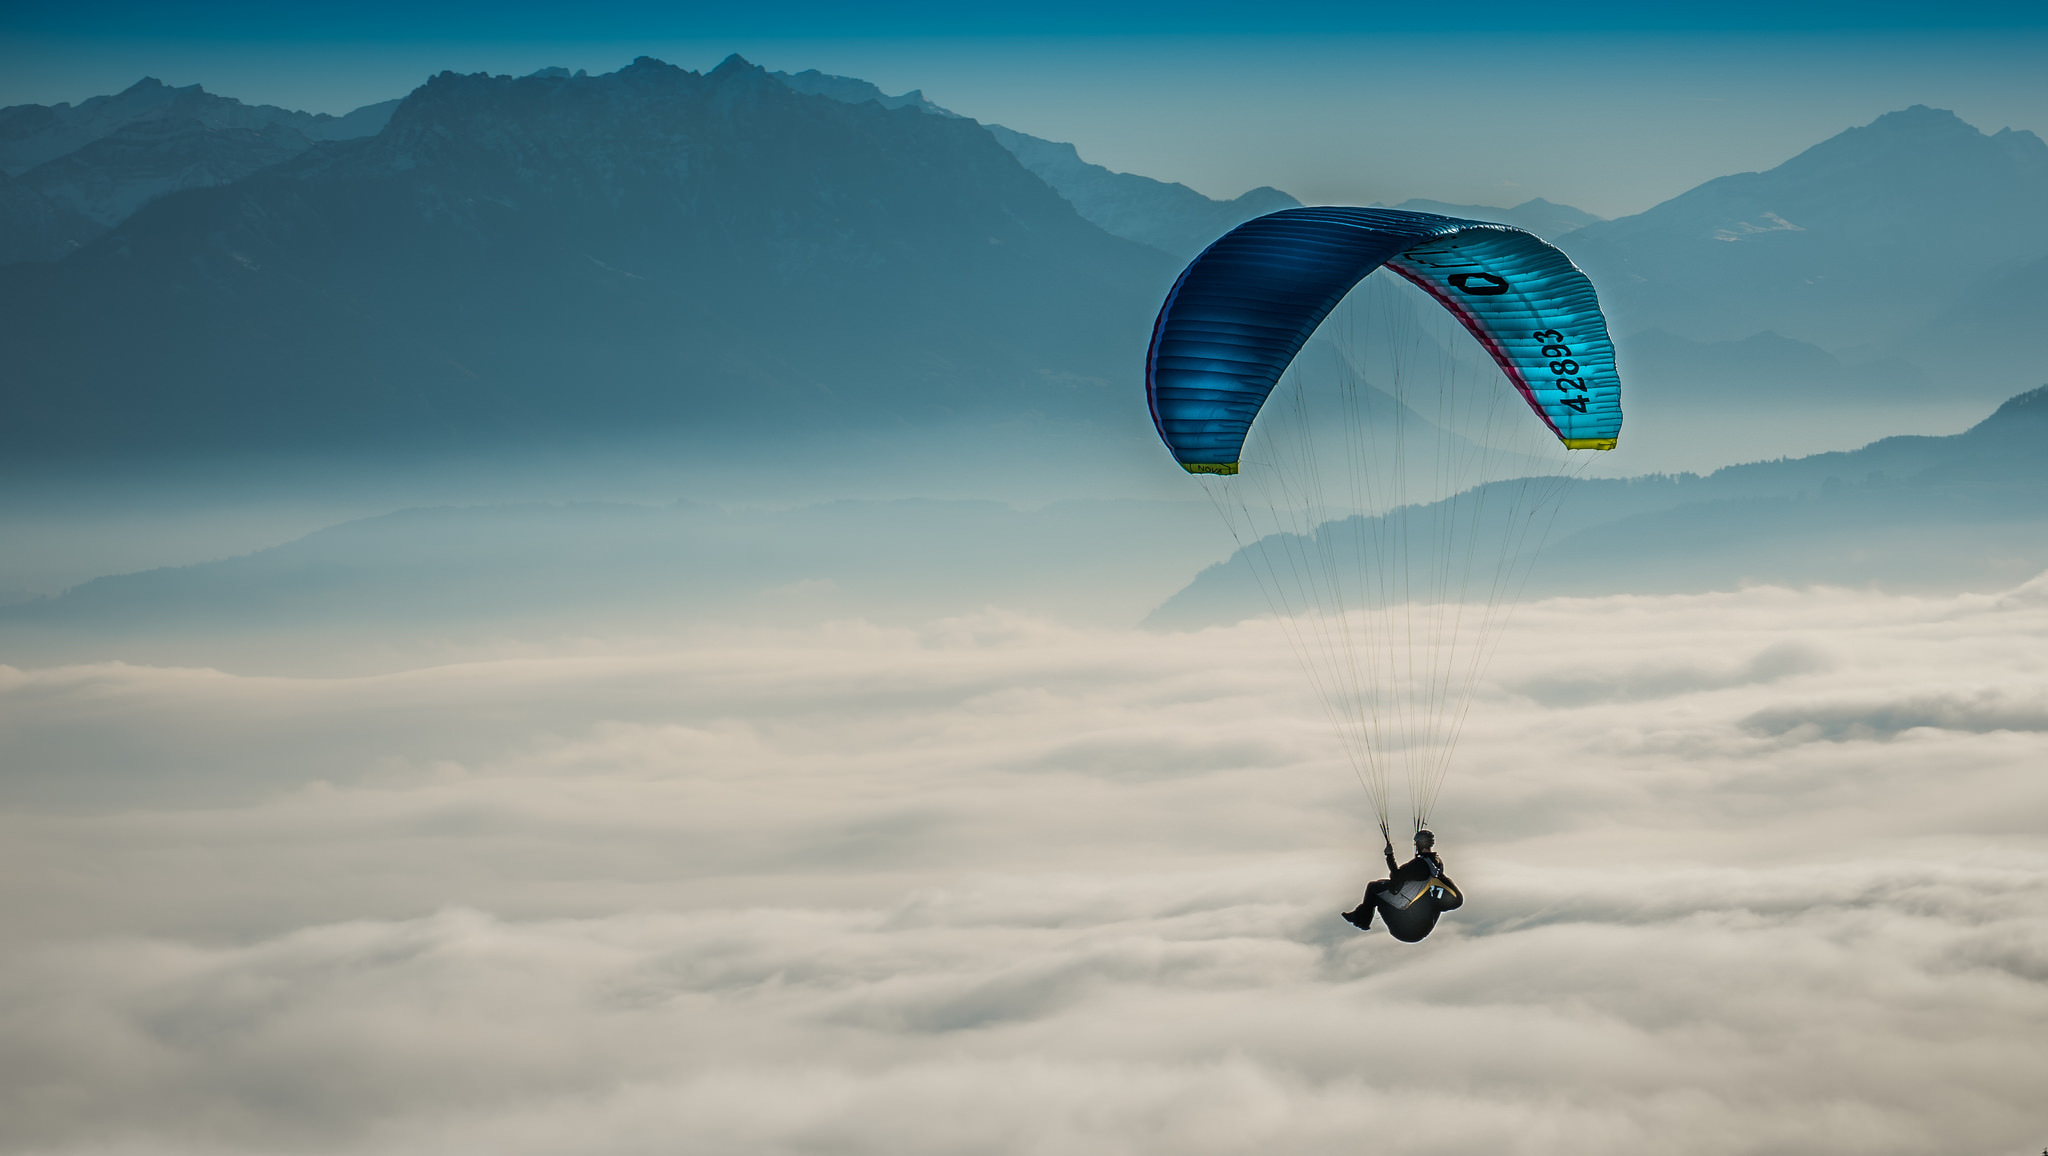 59025 download wallpaper Sports, Sky, Clouds, Paragliding, Paraglider screensavers and pictures for free